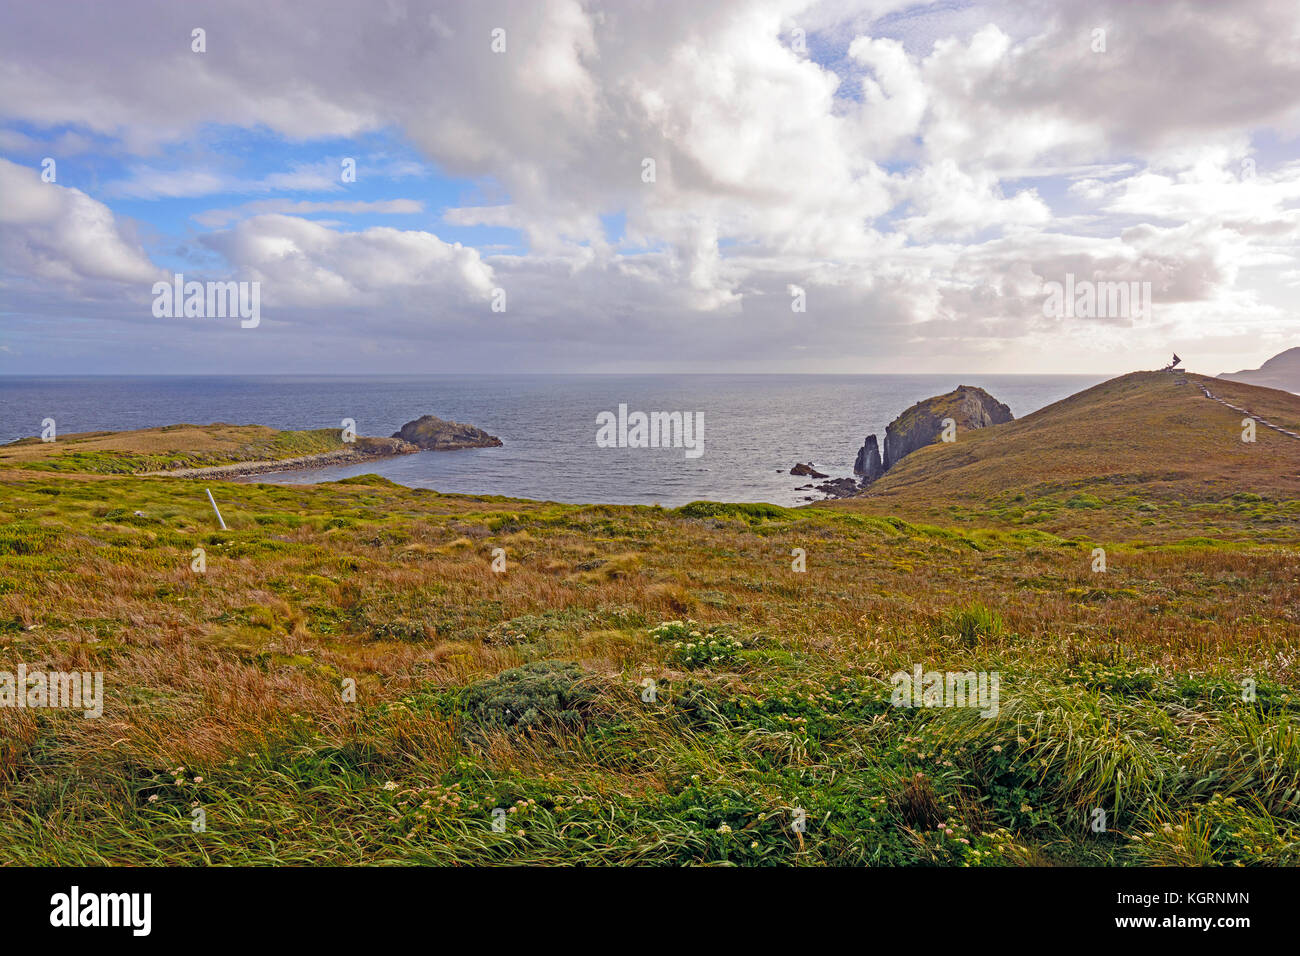 Looking South to the open ocean from Cape Horn in Chile - Stock Image